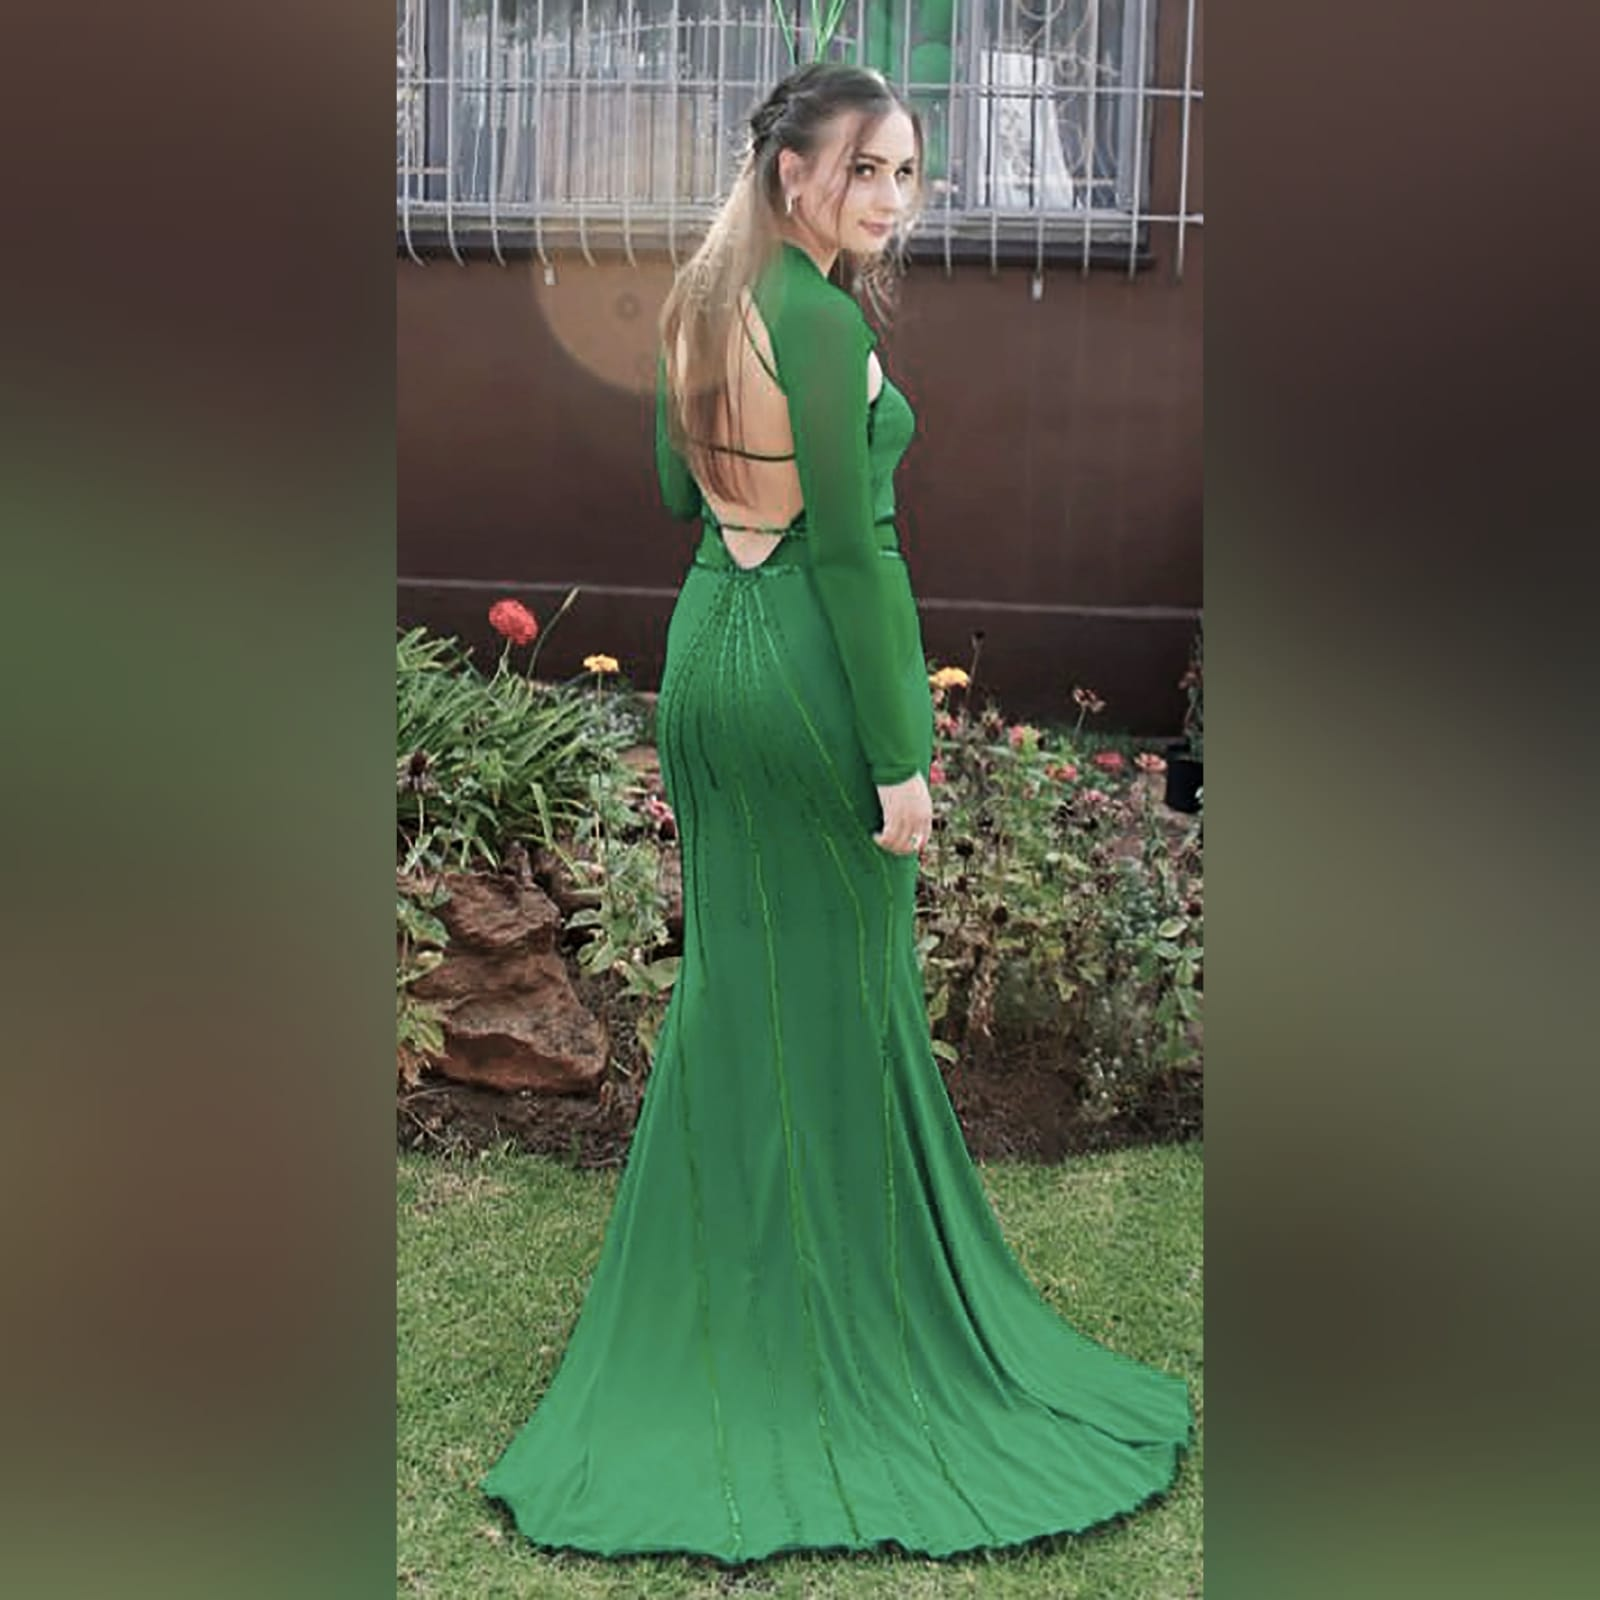 Green soft mermaid sexy unique evening dress 7 green soft mermaid sexy unique evening dress. Long sleeves, shoulders and leg panels in a slightly translucent fabric. A low open back detailed with sequins and beads.